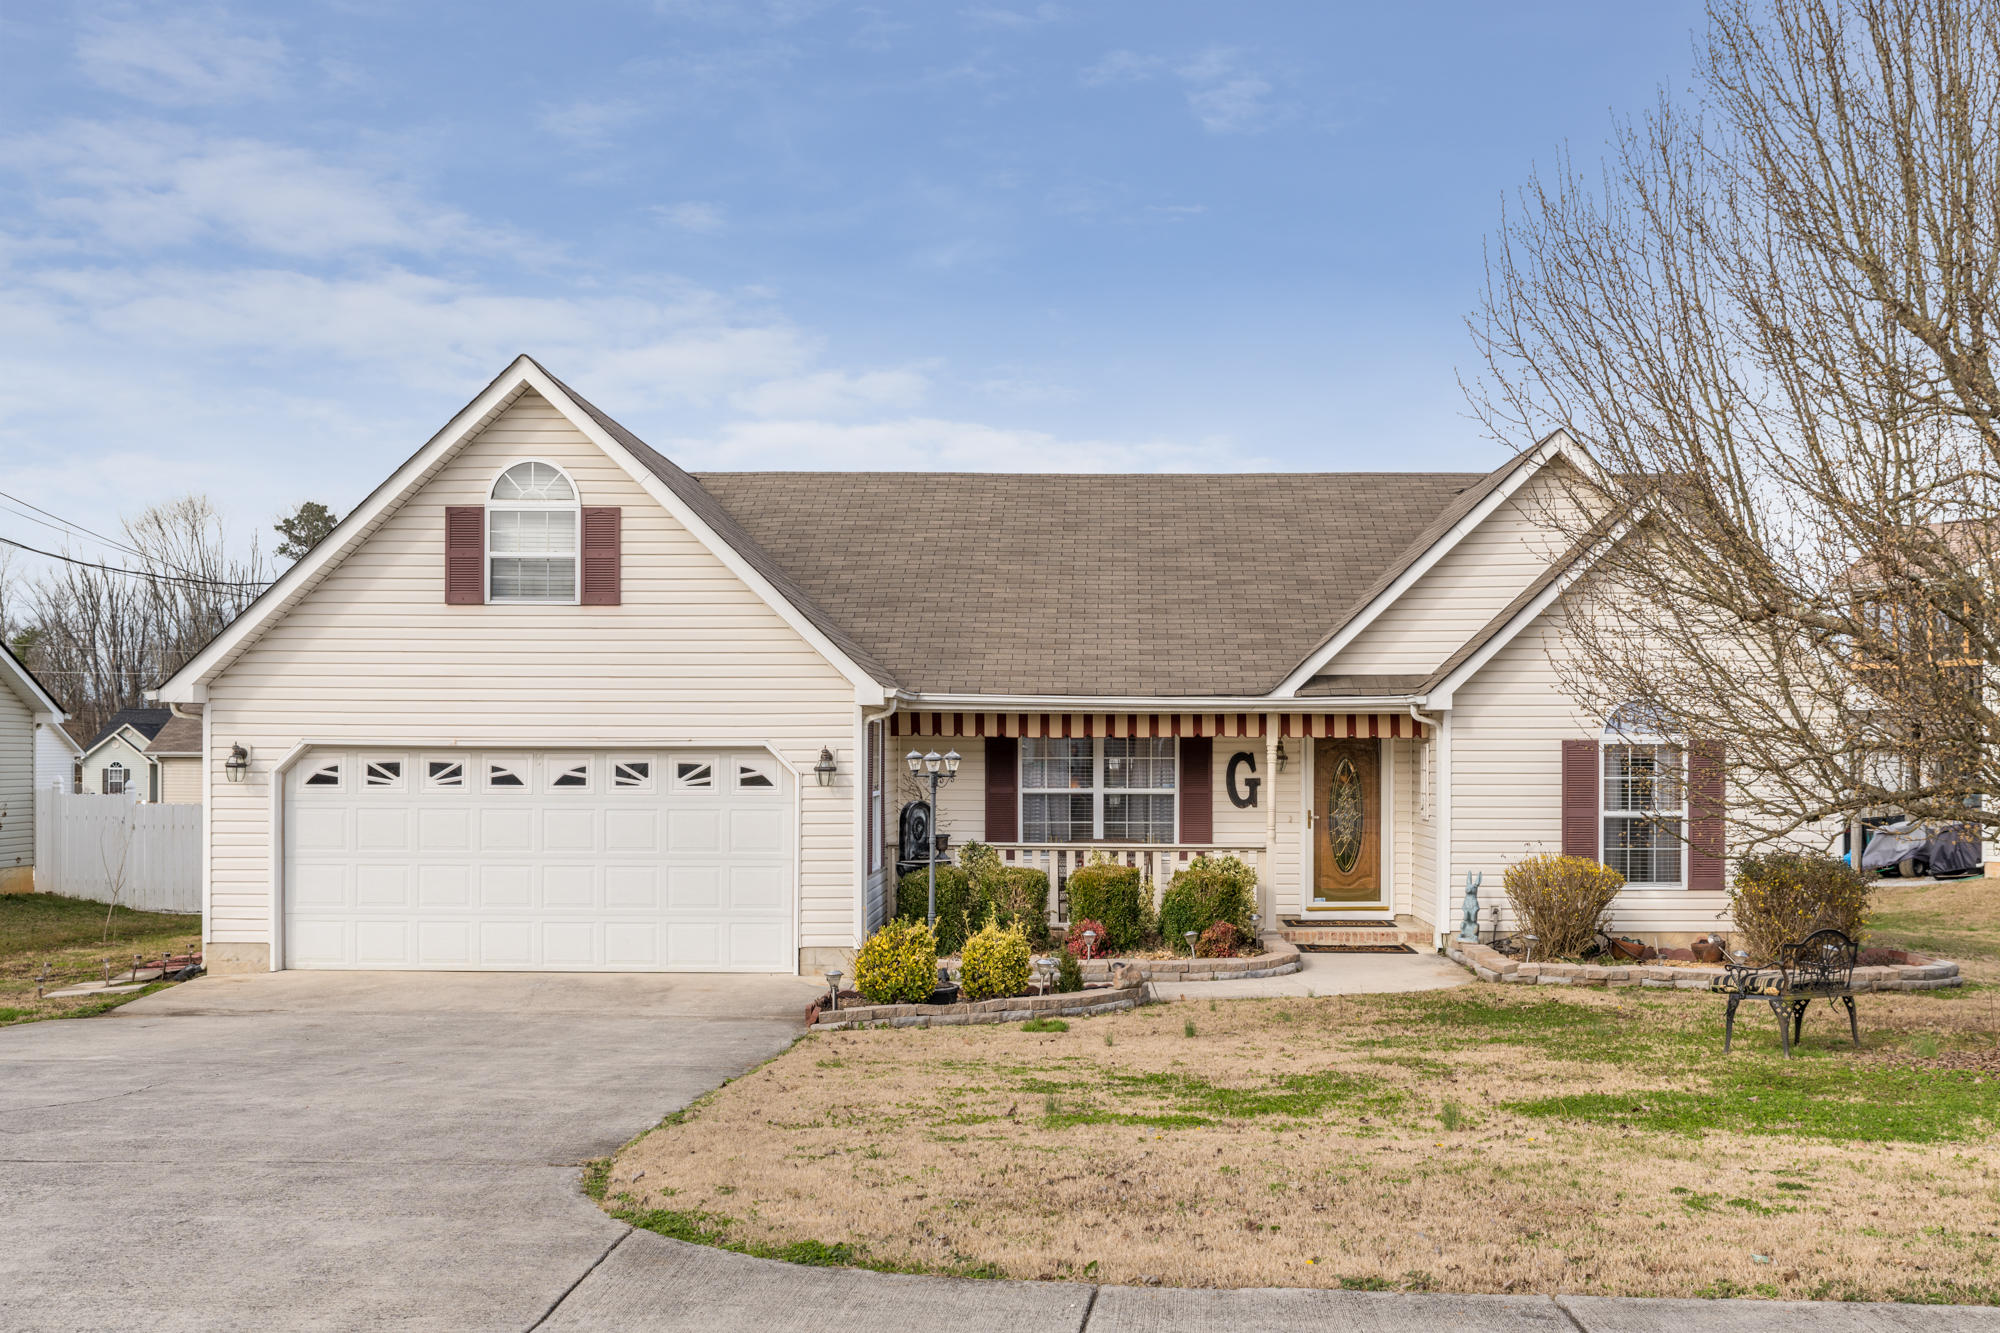 191 Bluegrass Cir, Rossville, GA 30741